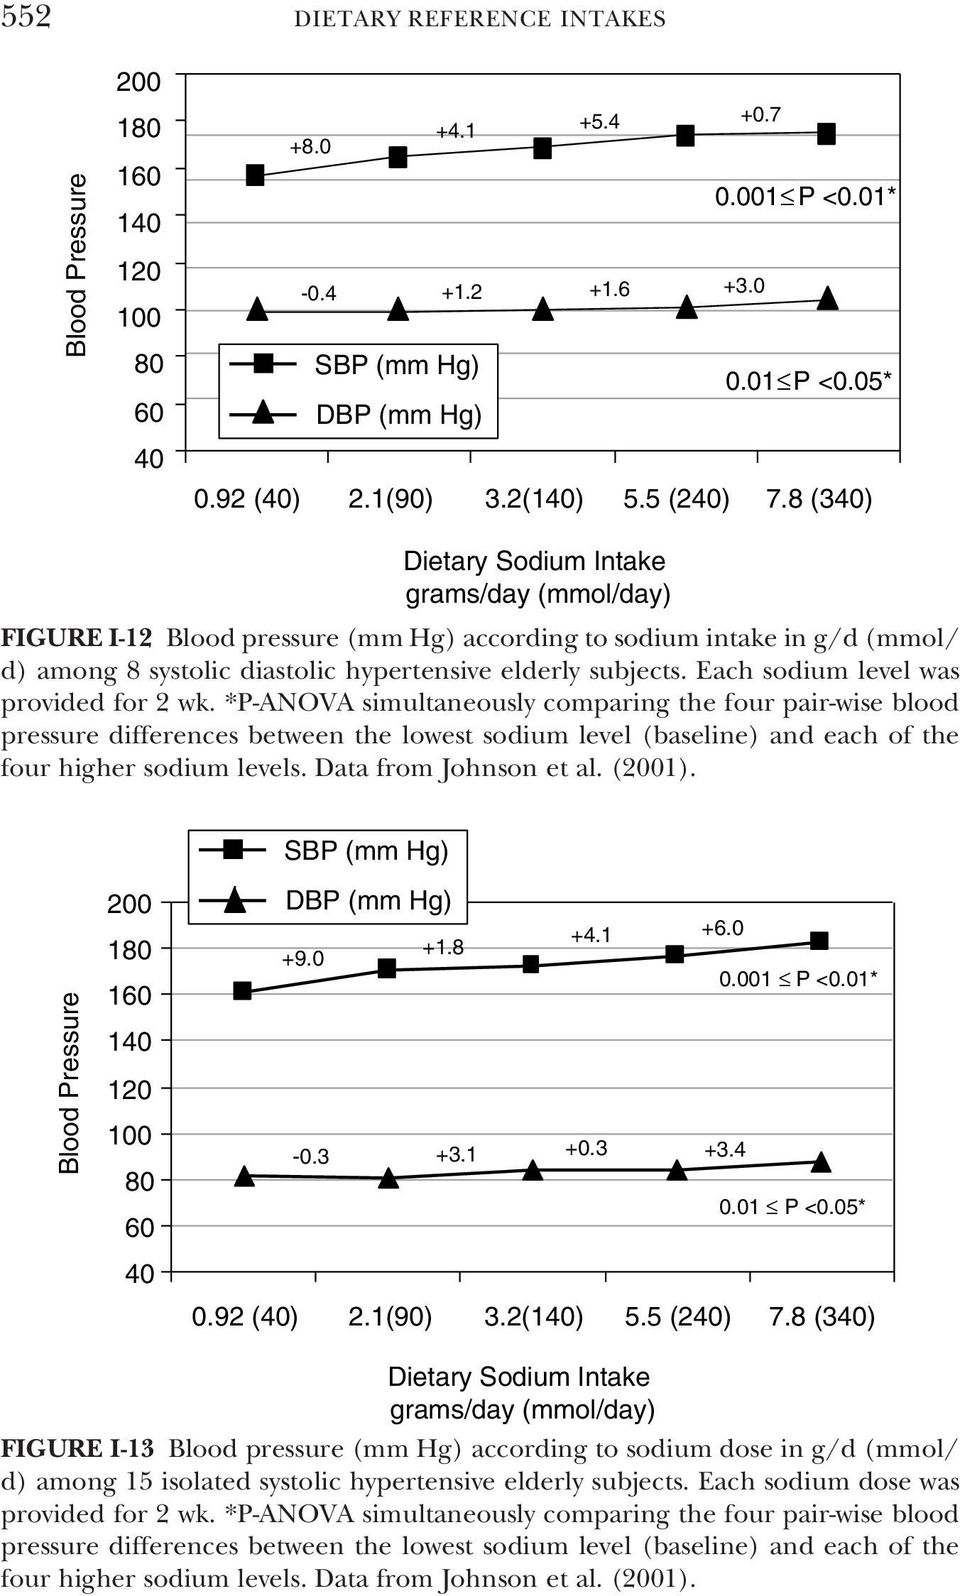 *P-ANOVA simultaneously comparing the four pair-wise blood pressure differences between the lowest sodium level (baseline) and each of the four higher sodium levels. Data from Johnson et al. (1).